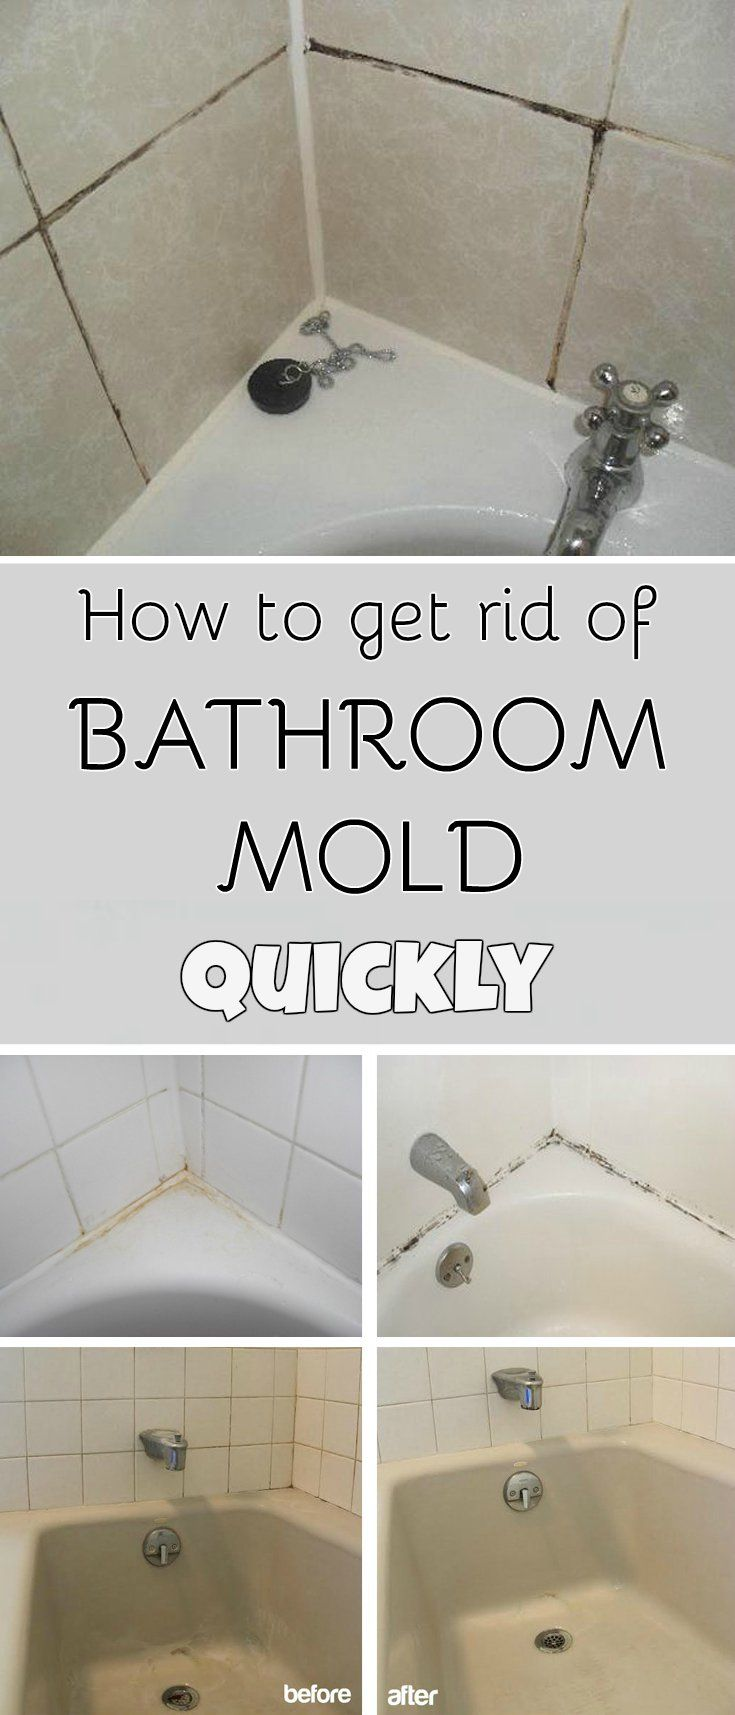 Best 25 Bathroom mold ideas on Pinterest  Mold in